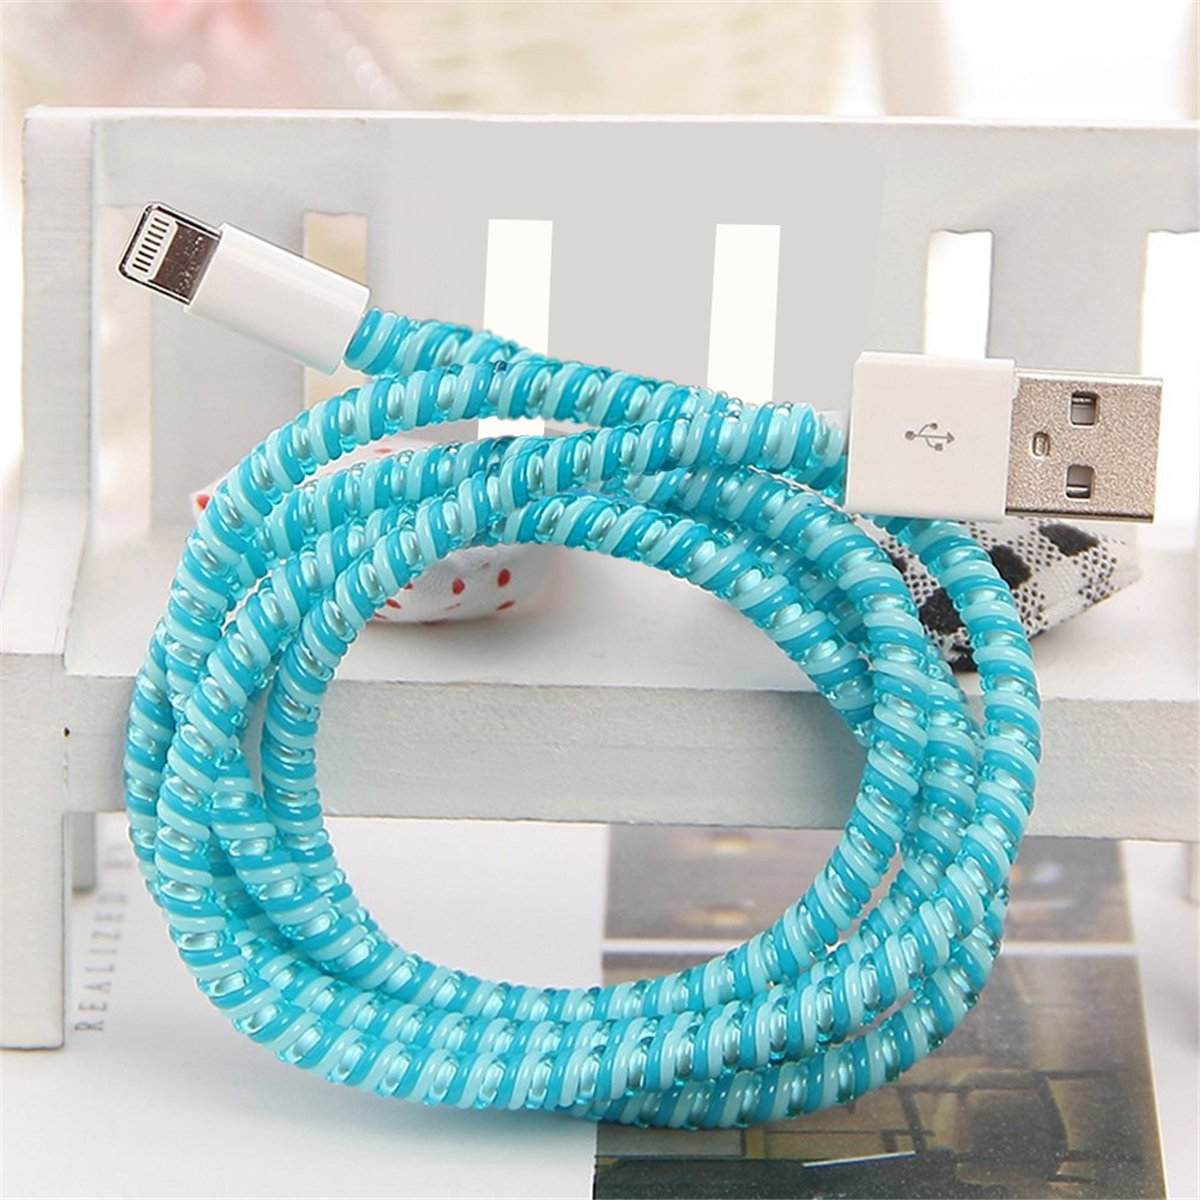 Amazon.com: Cable protector, PAMISO DIY Cartoon Style Spiral Wire ...